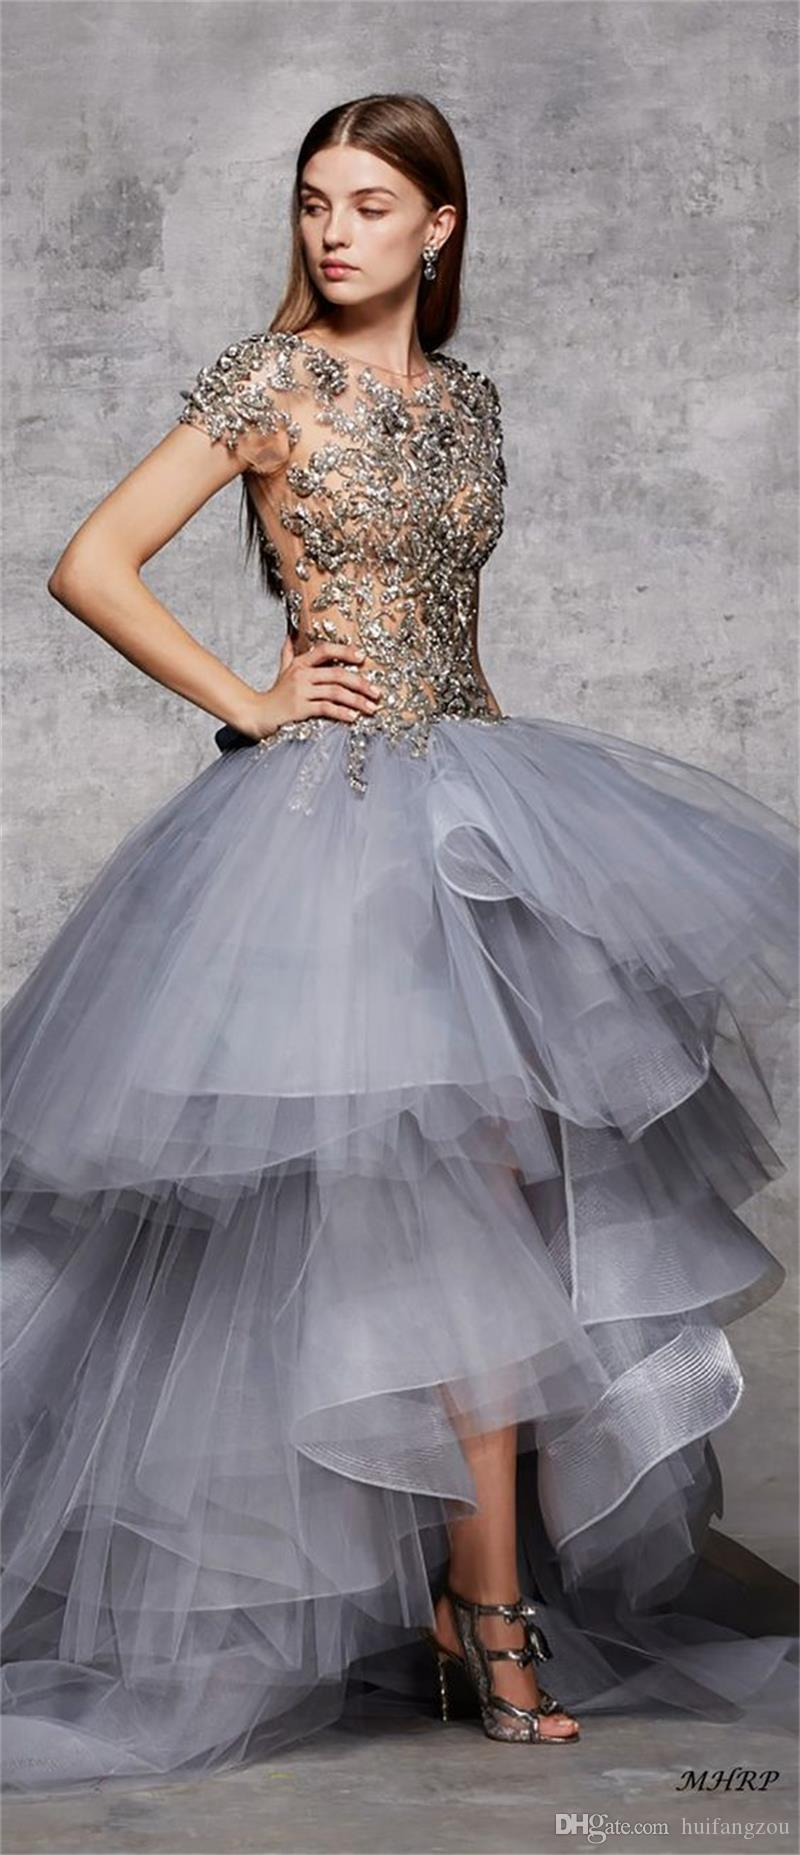 Marchesa Pre-Fall Gorgeous Prom Dresses High Quality Exquisite Beads Tiered Tulle Red Carpet Illusion Evening Gowns Formal Wear